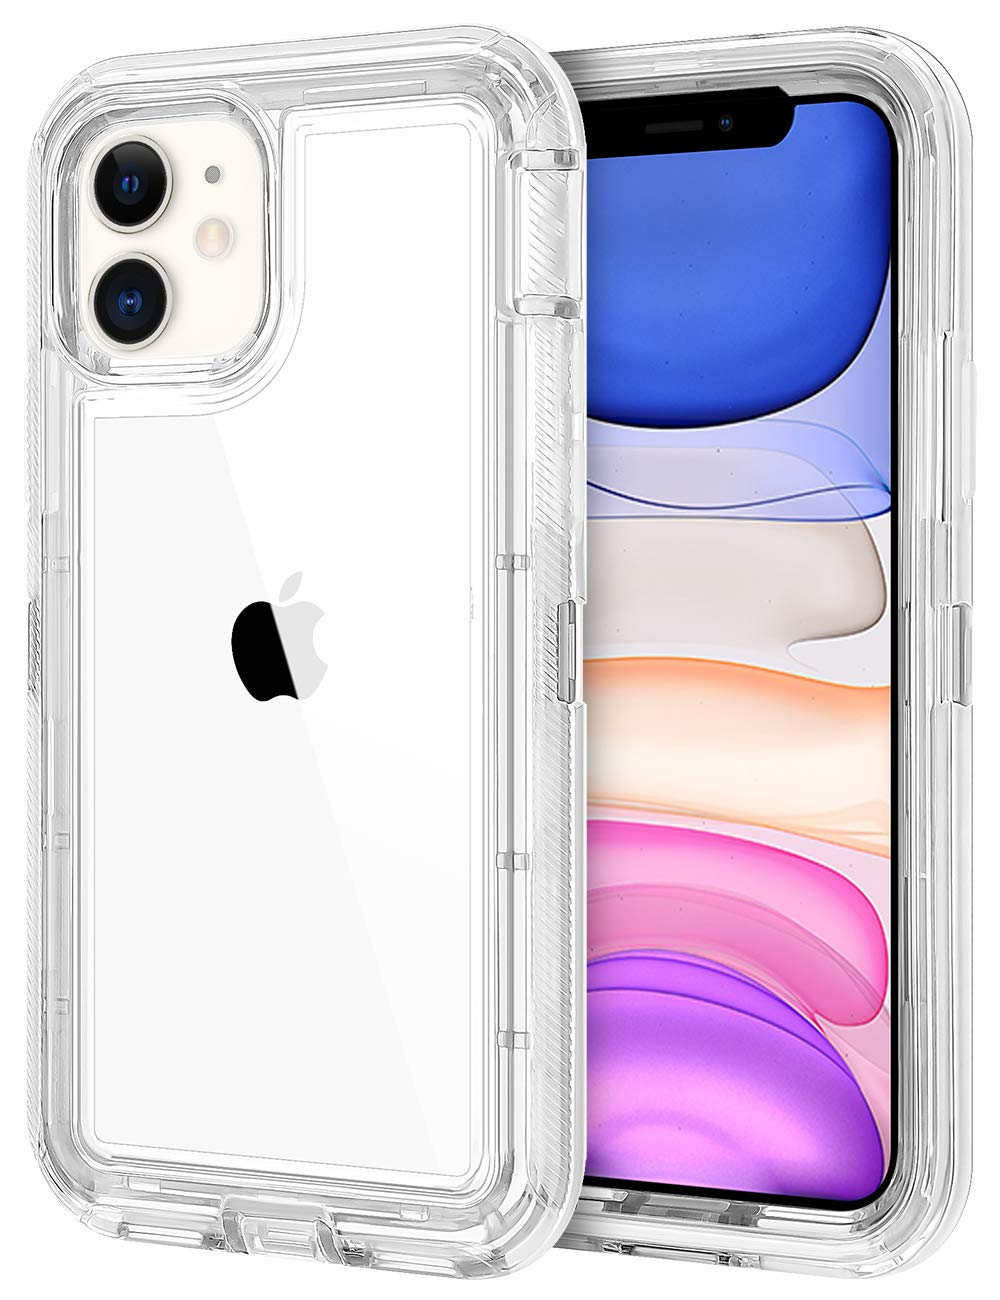 JAKPAK Case for iPhone 11 Case Clear Transparent Heavy Duty Protection for iPhone 11 Case Shockproof Anti Scratch Cover with Dual Layer PC Bumper TPU Back Case for iPhone 11 6.1inches Transparent